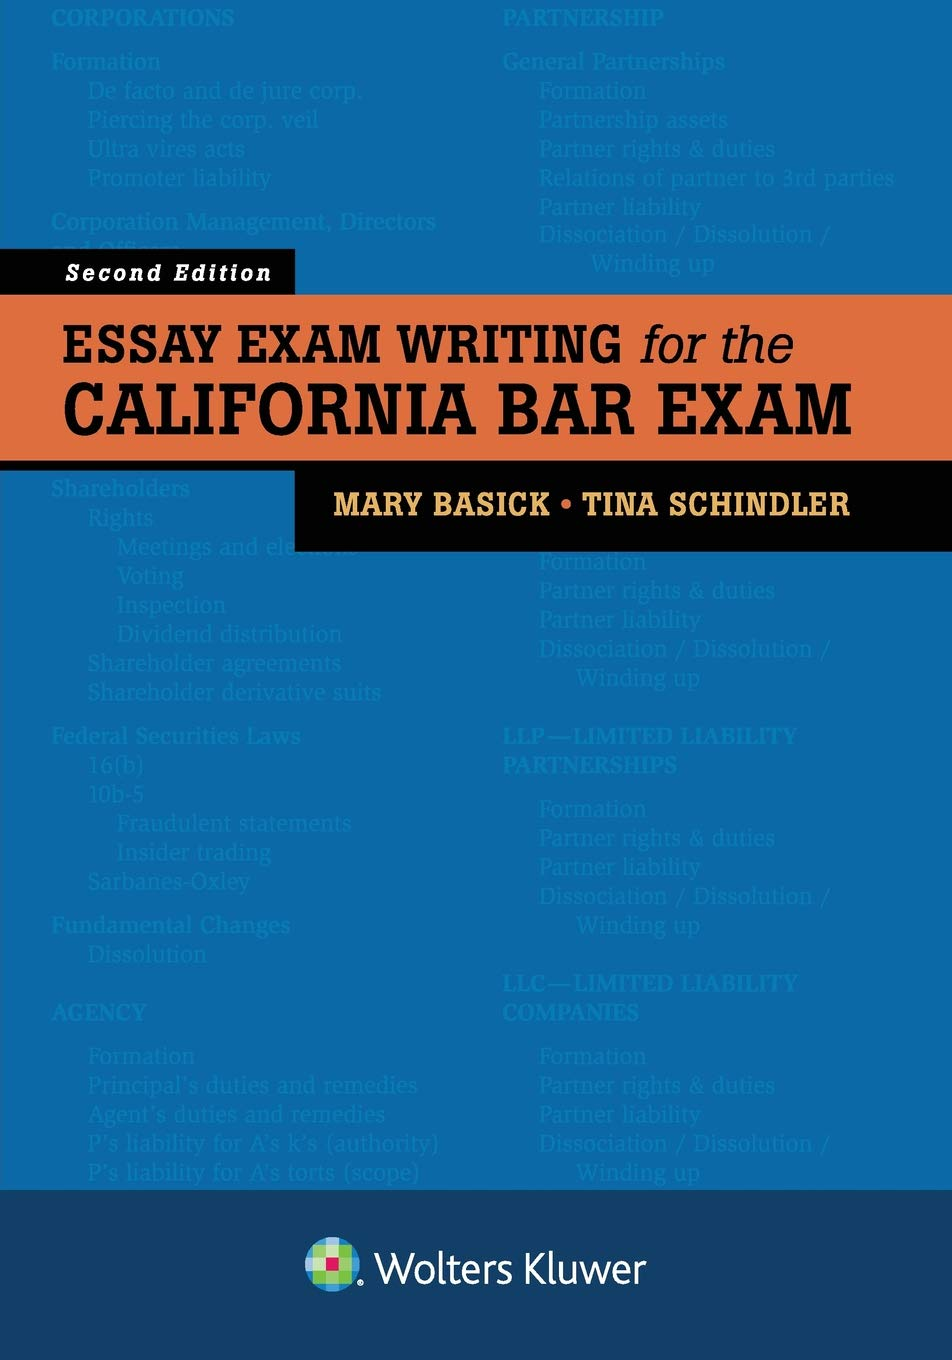 Essay Exam Writing for the California Bar Exam by Wolters Kluwer